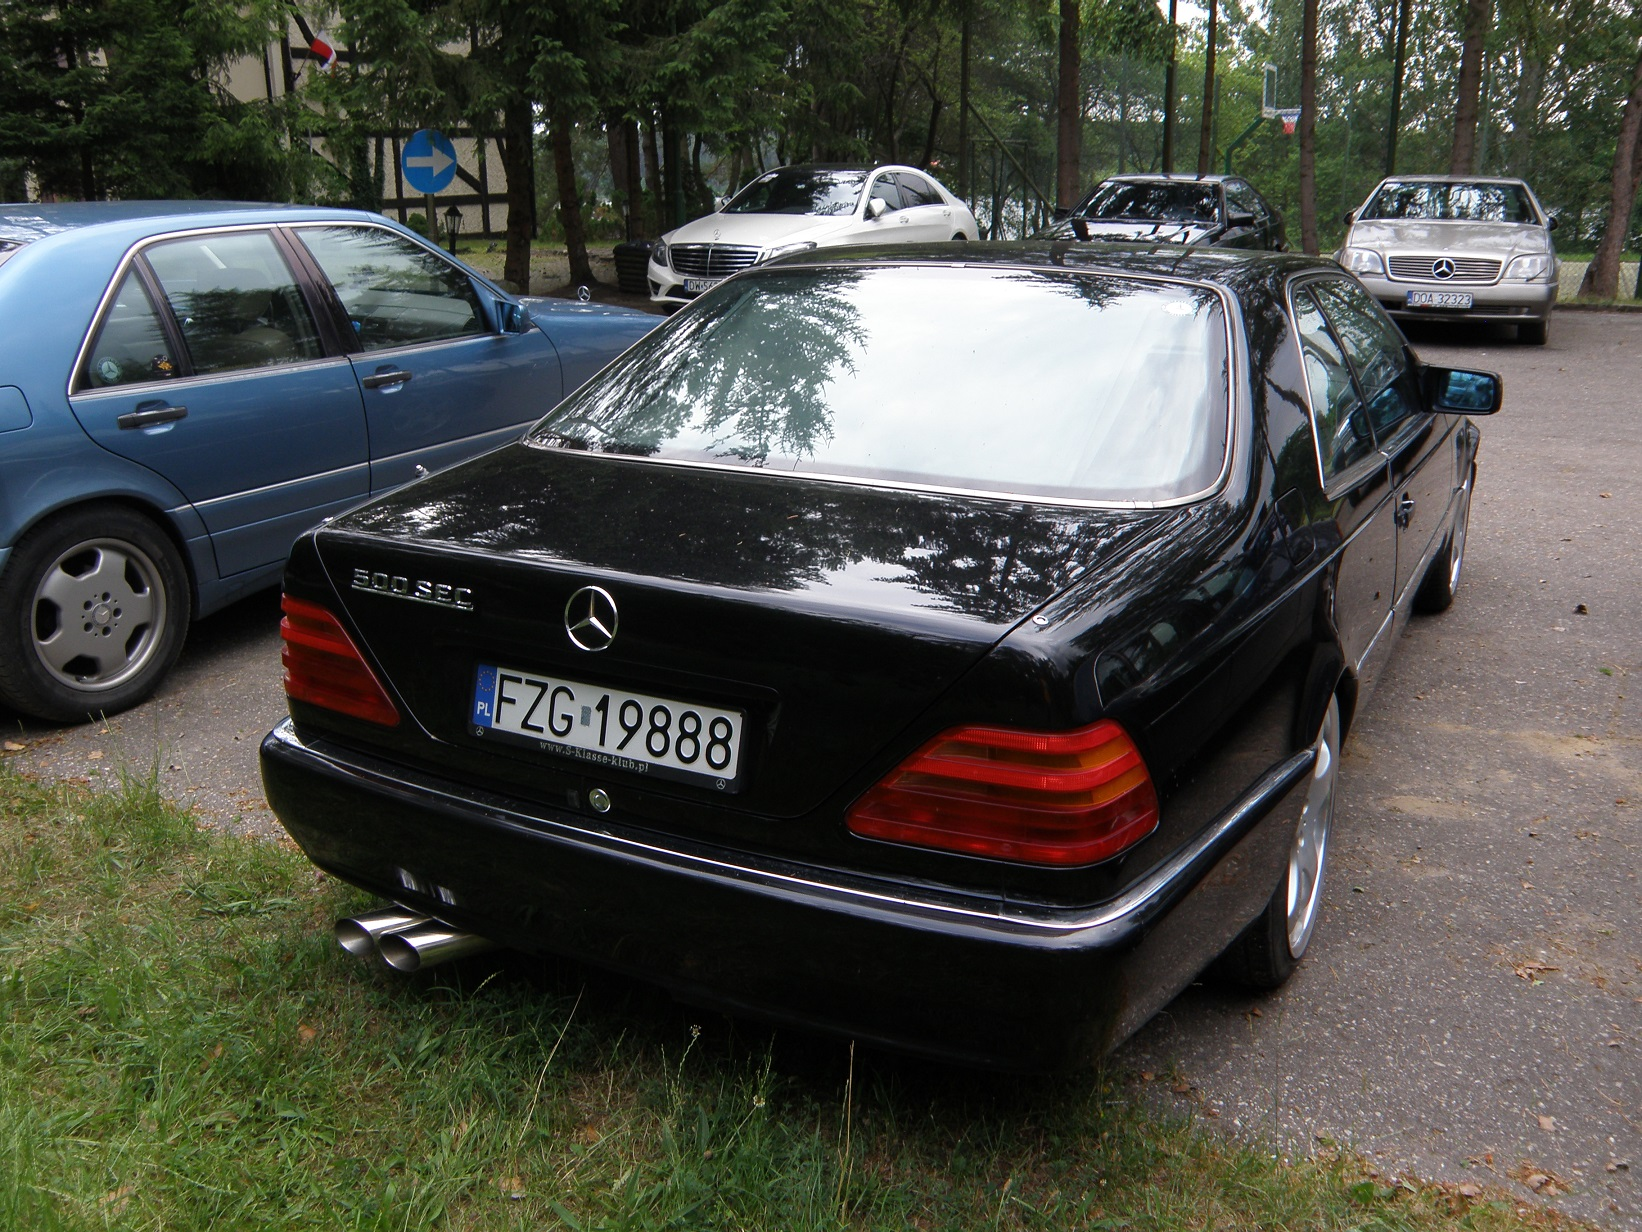 http://124coupe.pl/hosting/images/1498983755.jpg